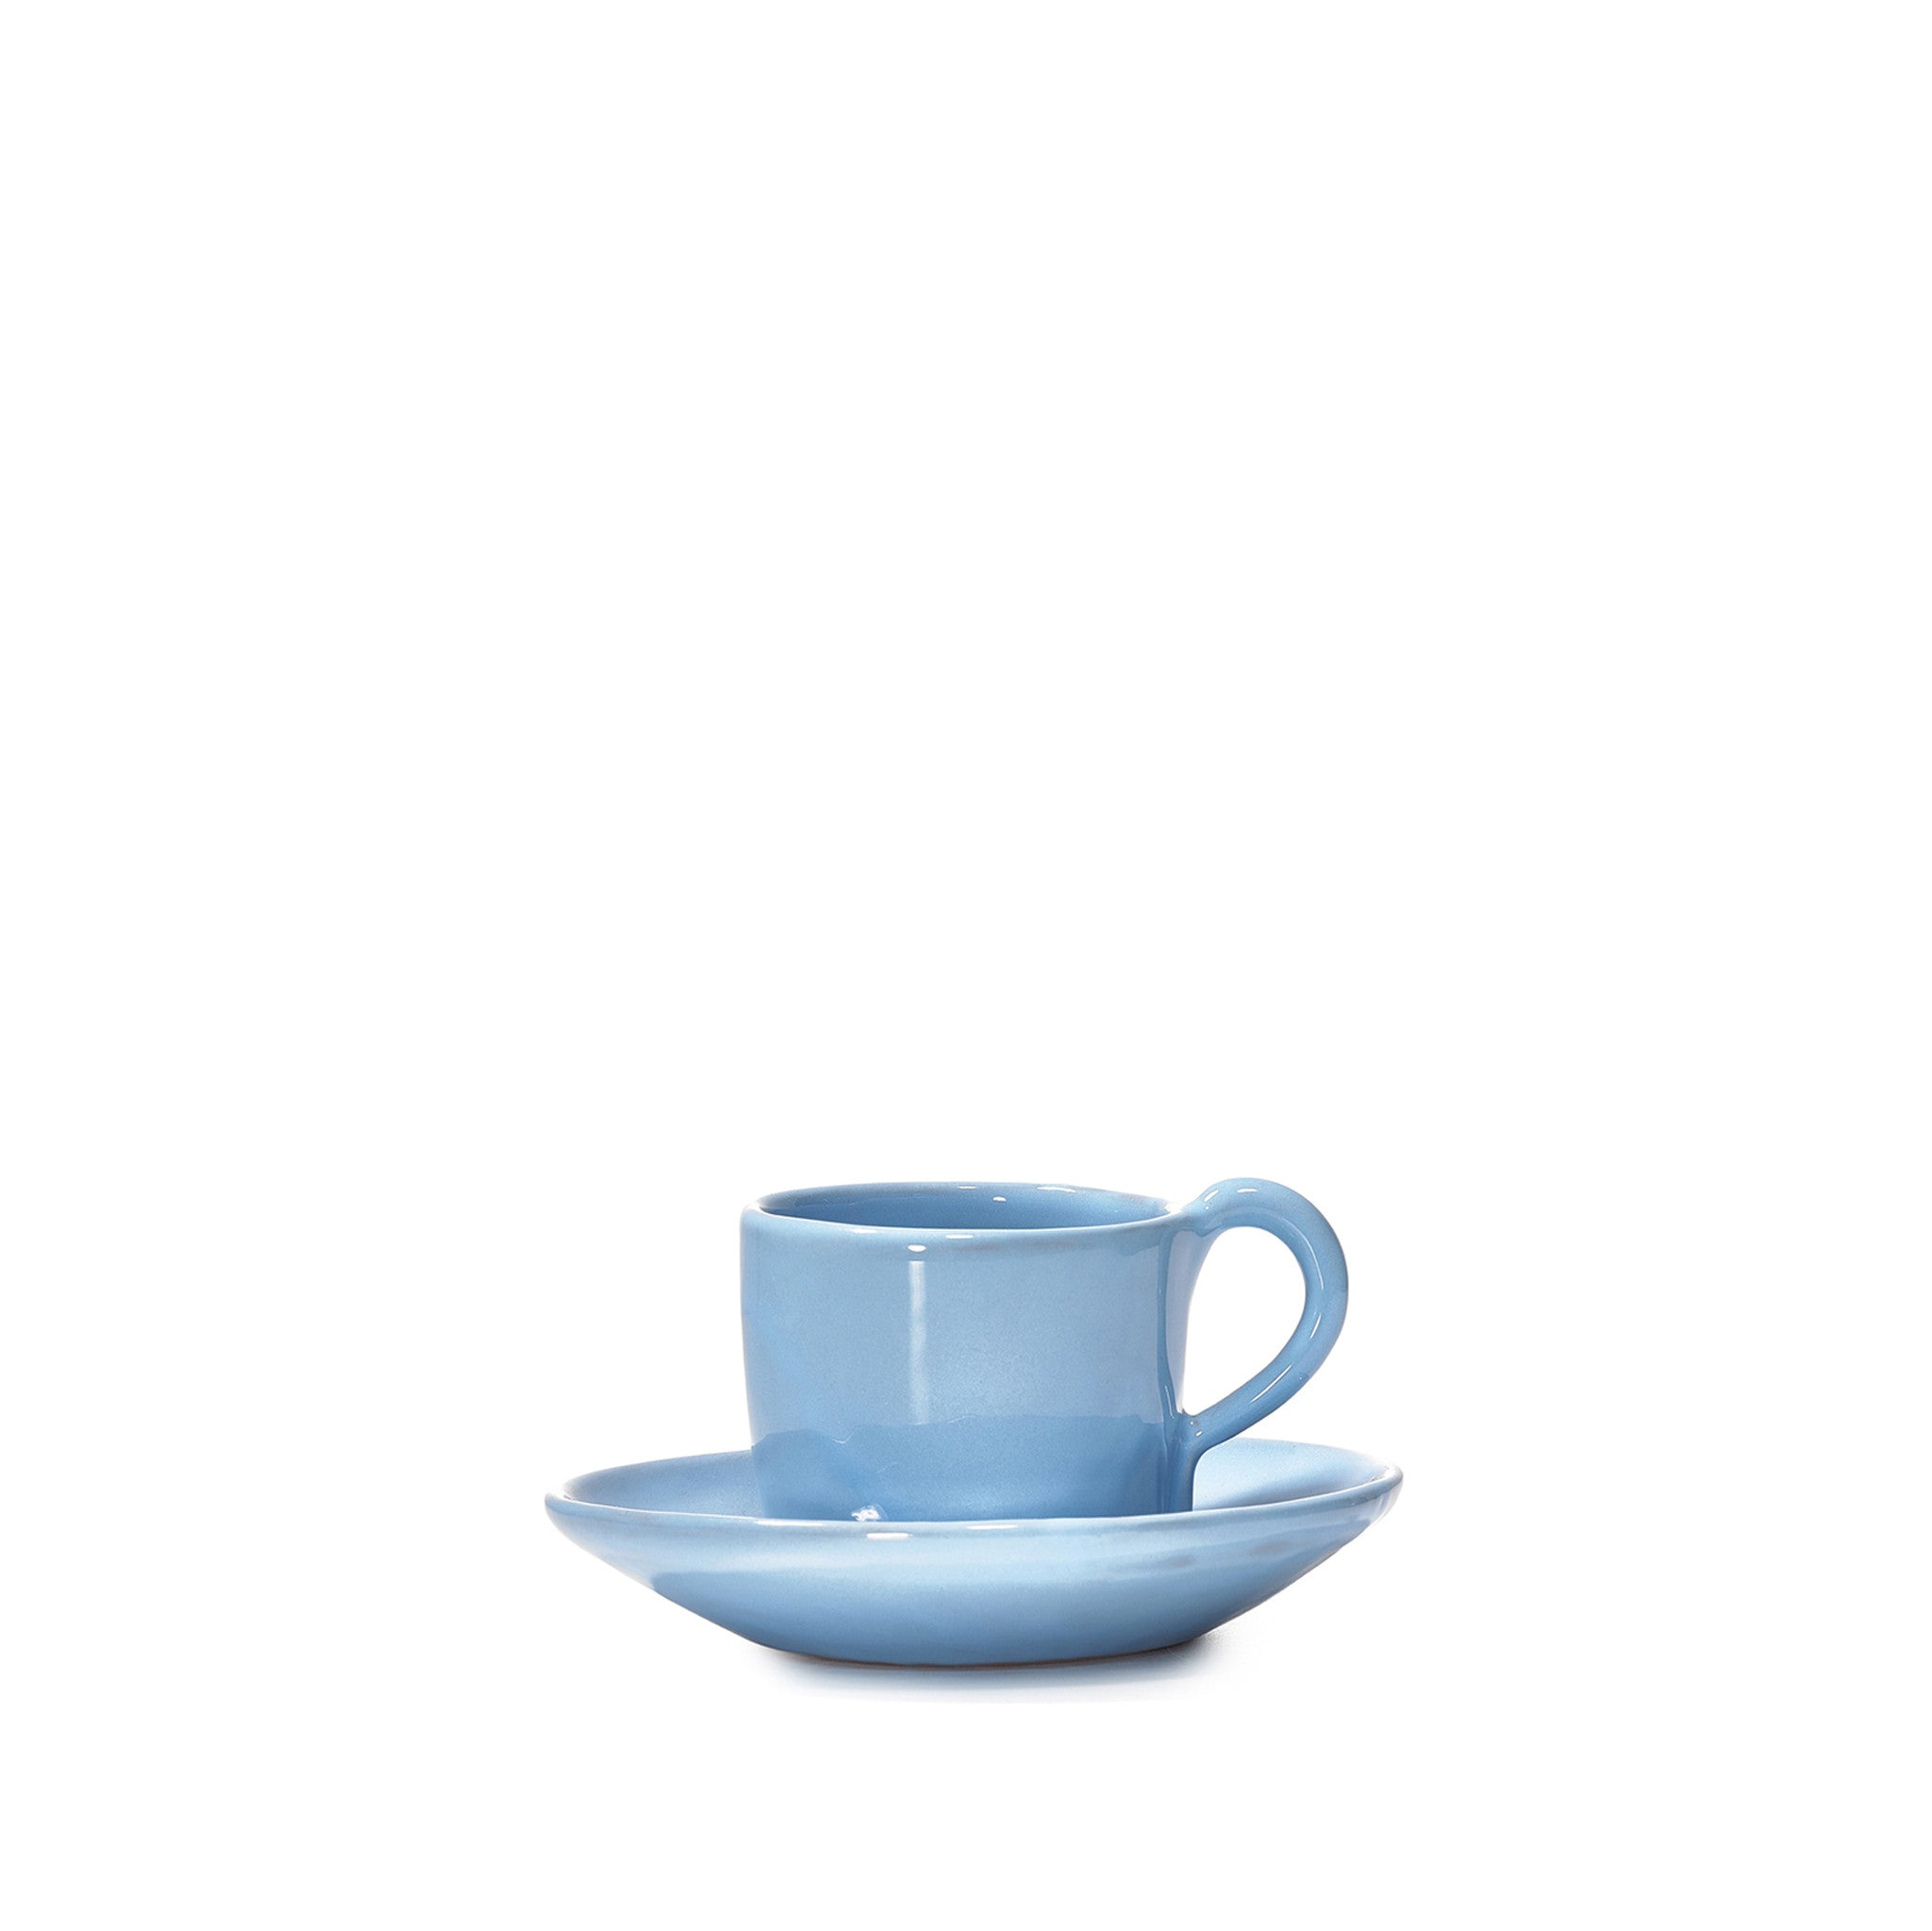 Espresso Cup and Saucer in Sky Blue